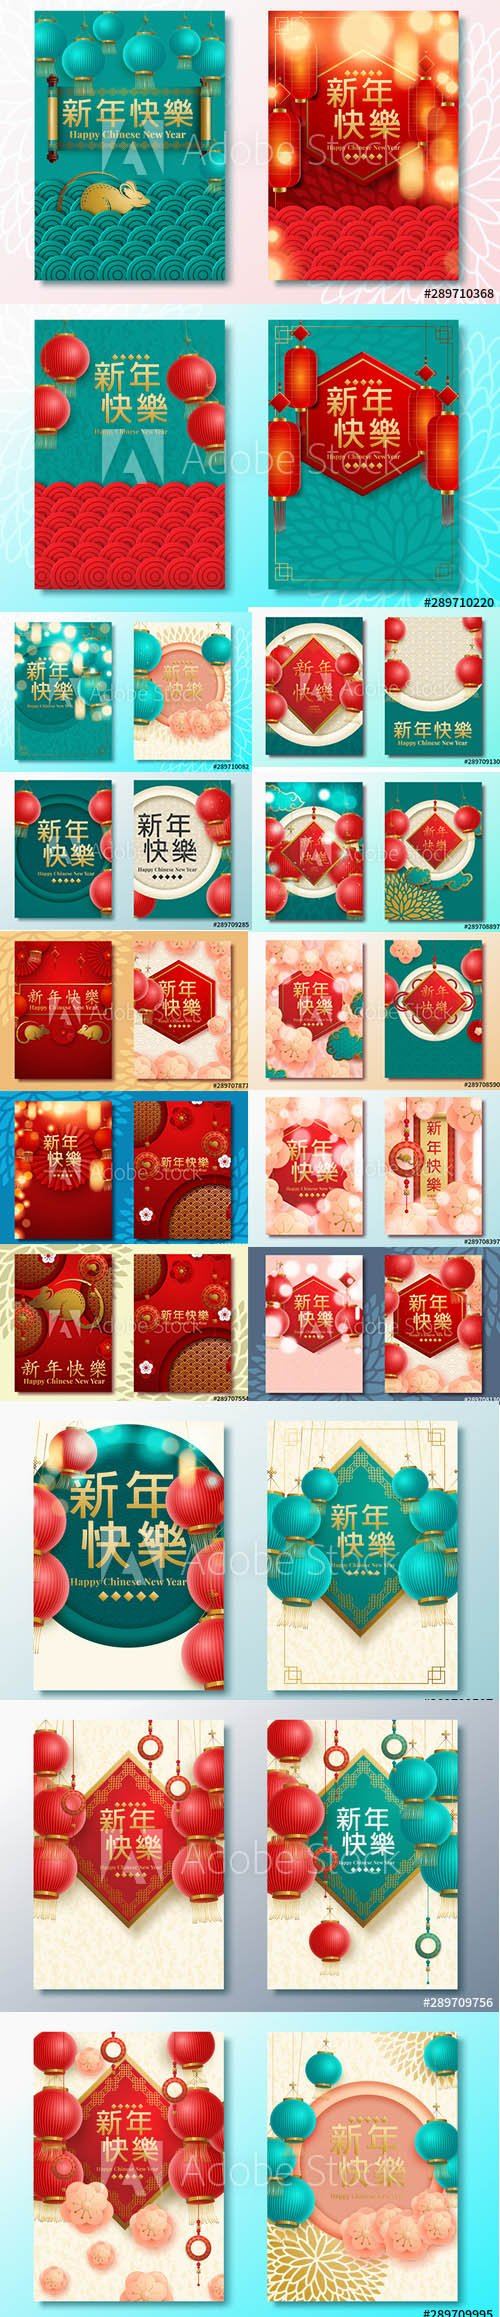 Happy Chinese New Year 2020 Banner, Poster or Background